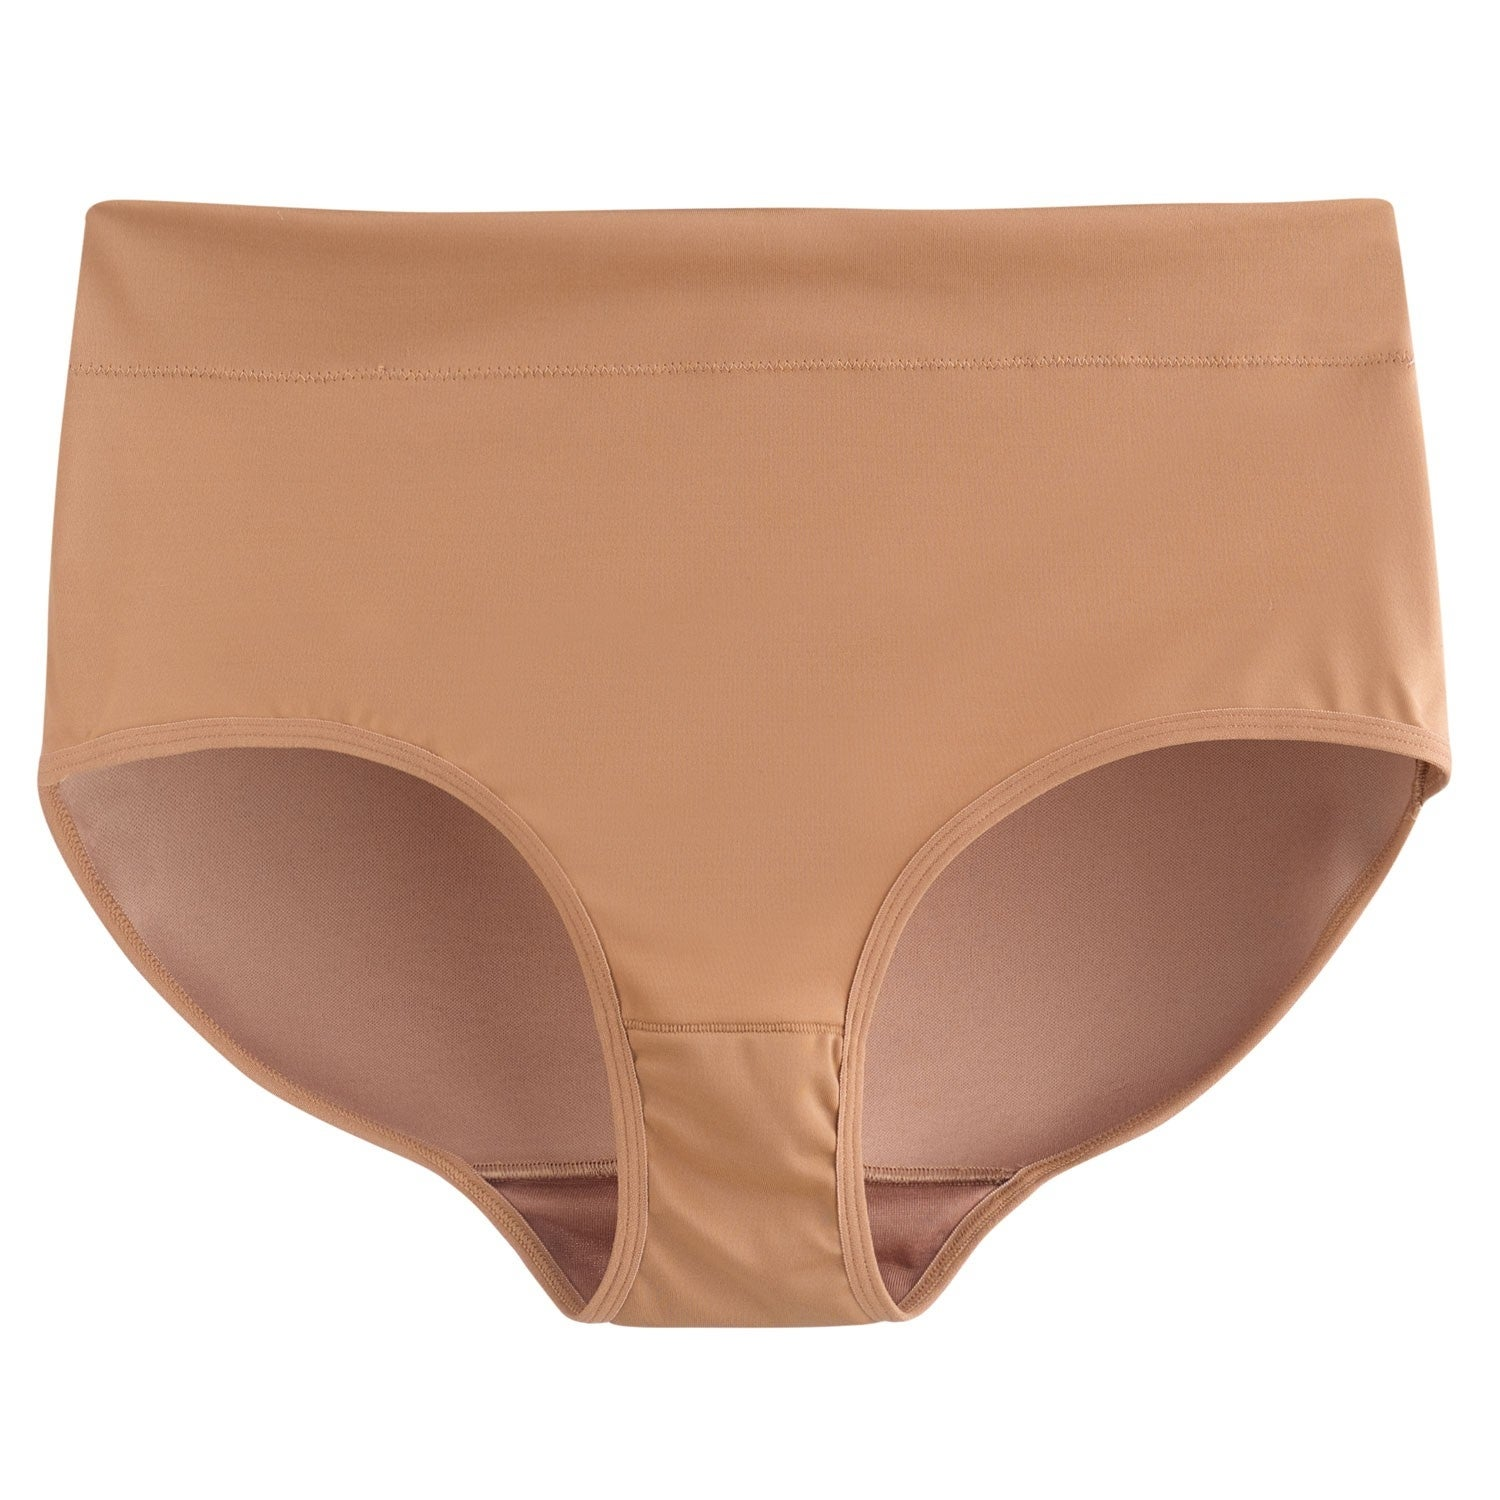 3a46bf1fe63fd Shop Ahh By Rhonda Shear Women s Molded Padded Briefs - Bottom Enhancing  Underwear - Free Shipping On Orders Over  45 - Overstock - 26053916